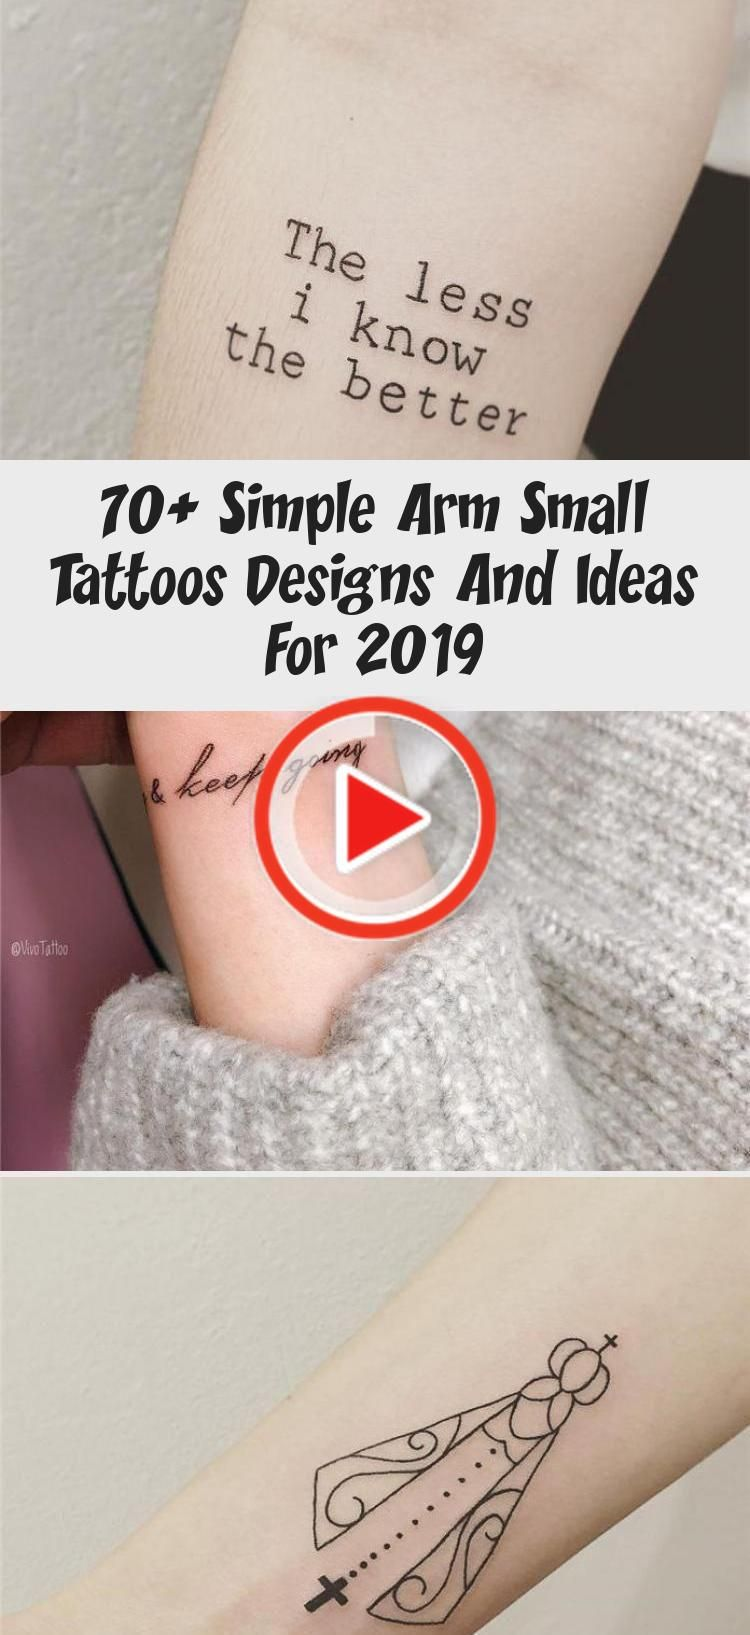 Photo of 70+ Simple Small Arm Tattoos designs and ideas for 2019 Arm Arm tattoos quote-quote tattoos